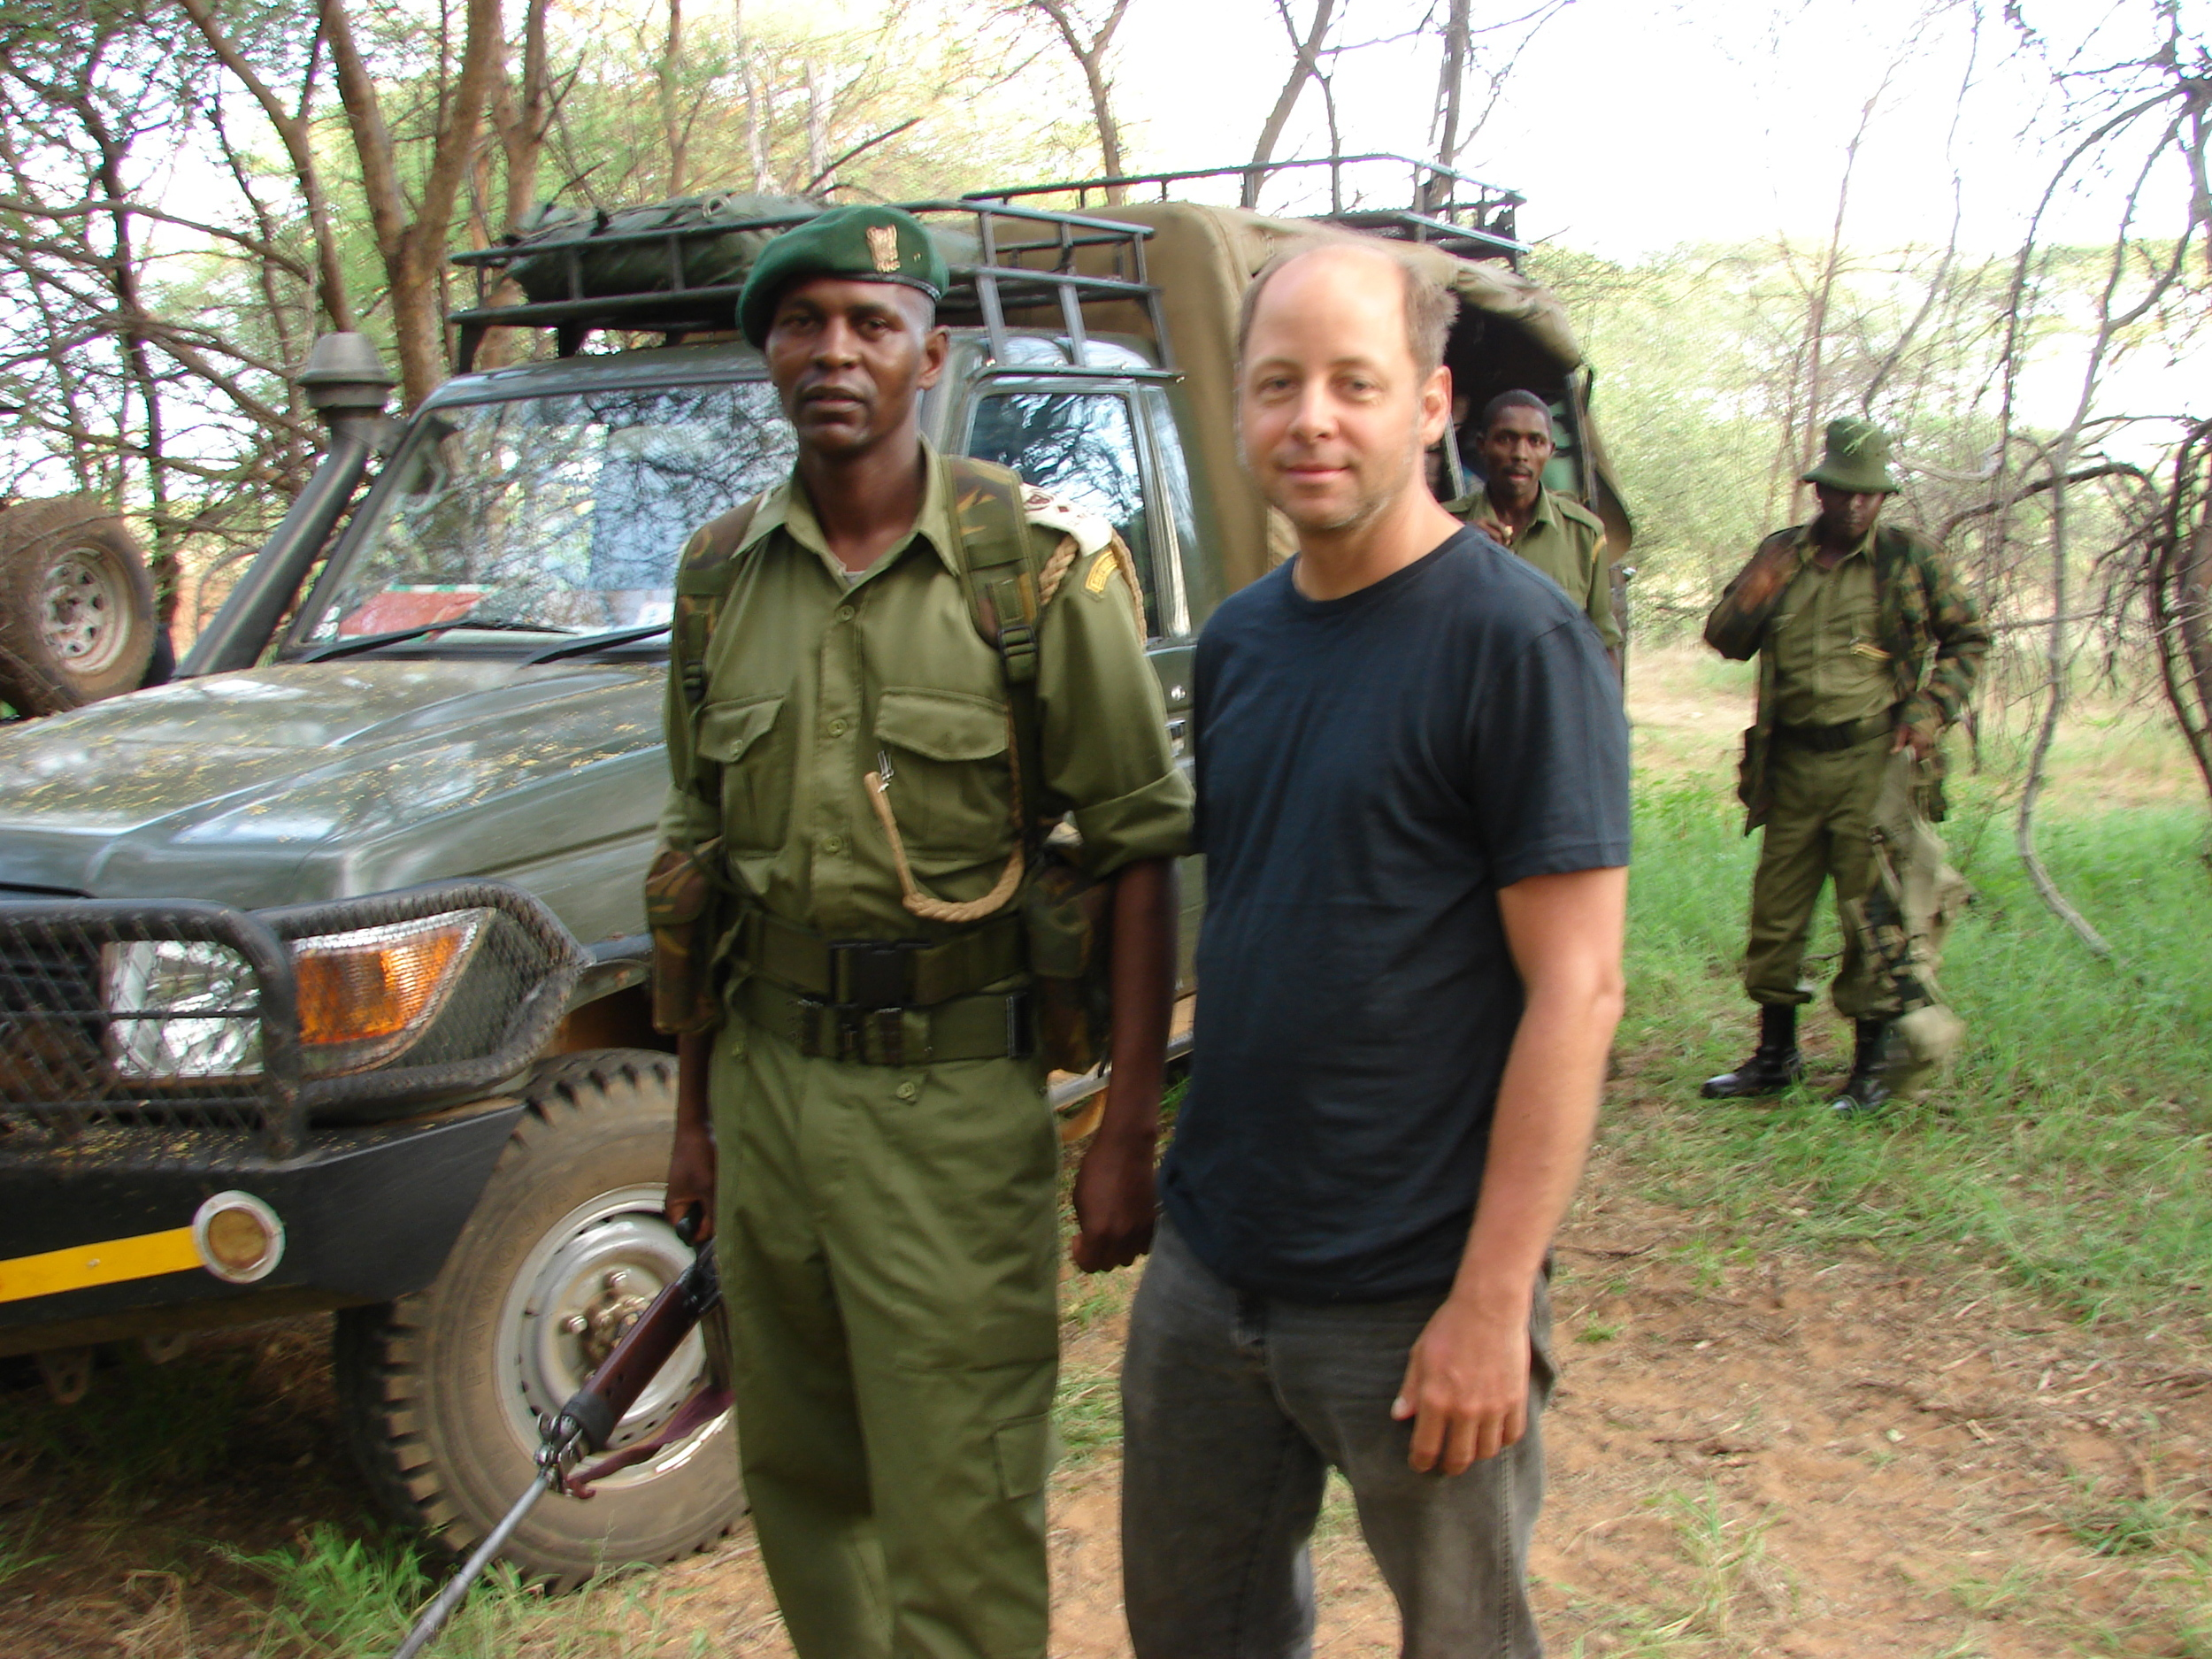 Kevin (center) with Commander Michael NTosho (left), filming in Kenya.